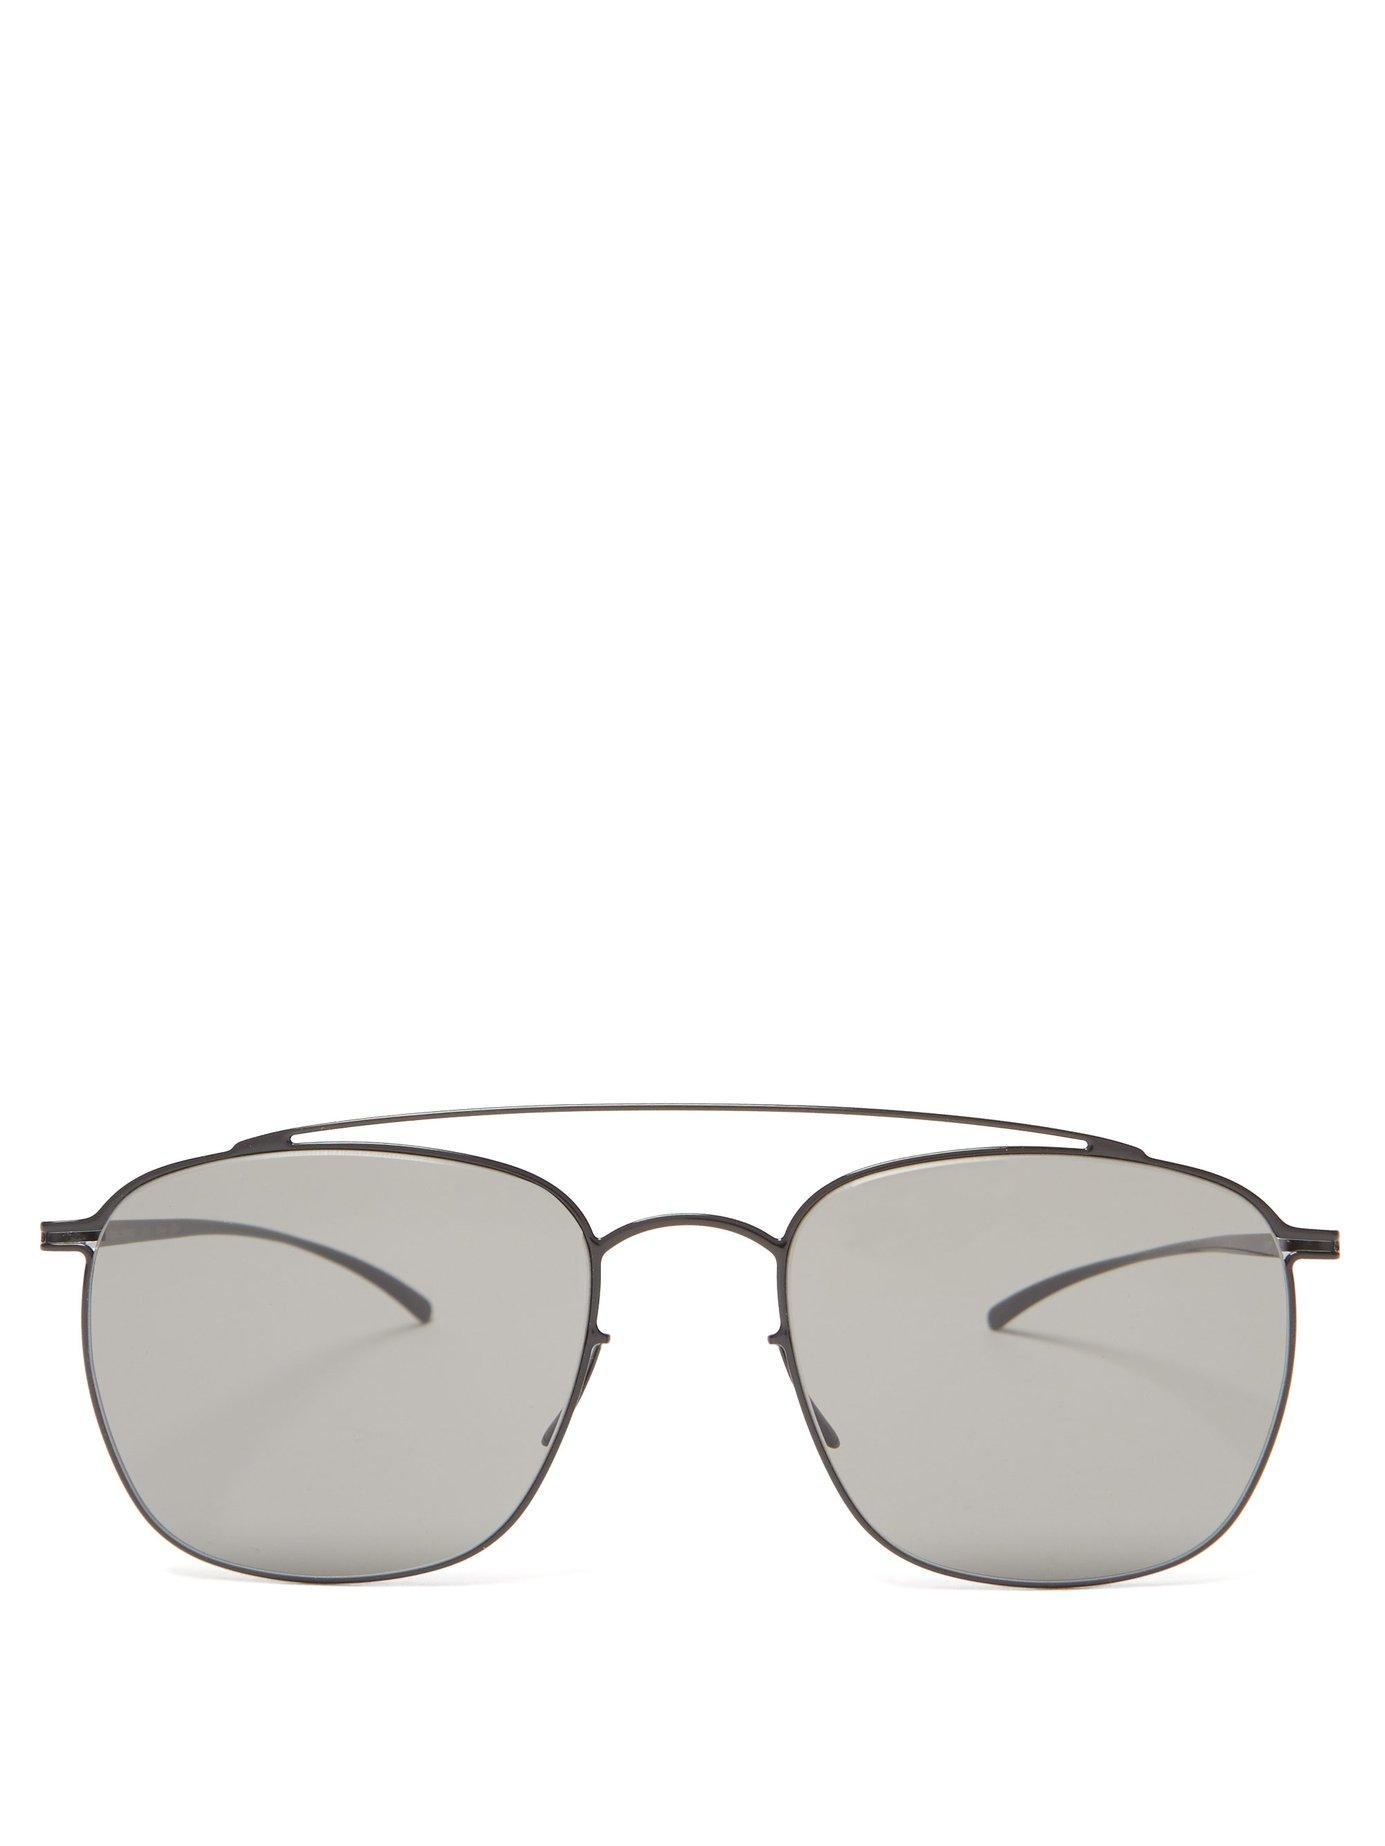 278b9d8ae13 Lyst - Mykita X Maison Margiela Aviator Metal Sunglasses in Black ...